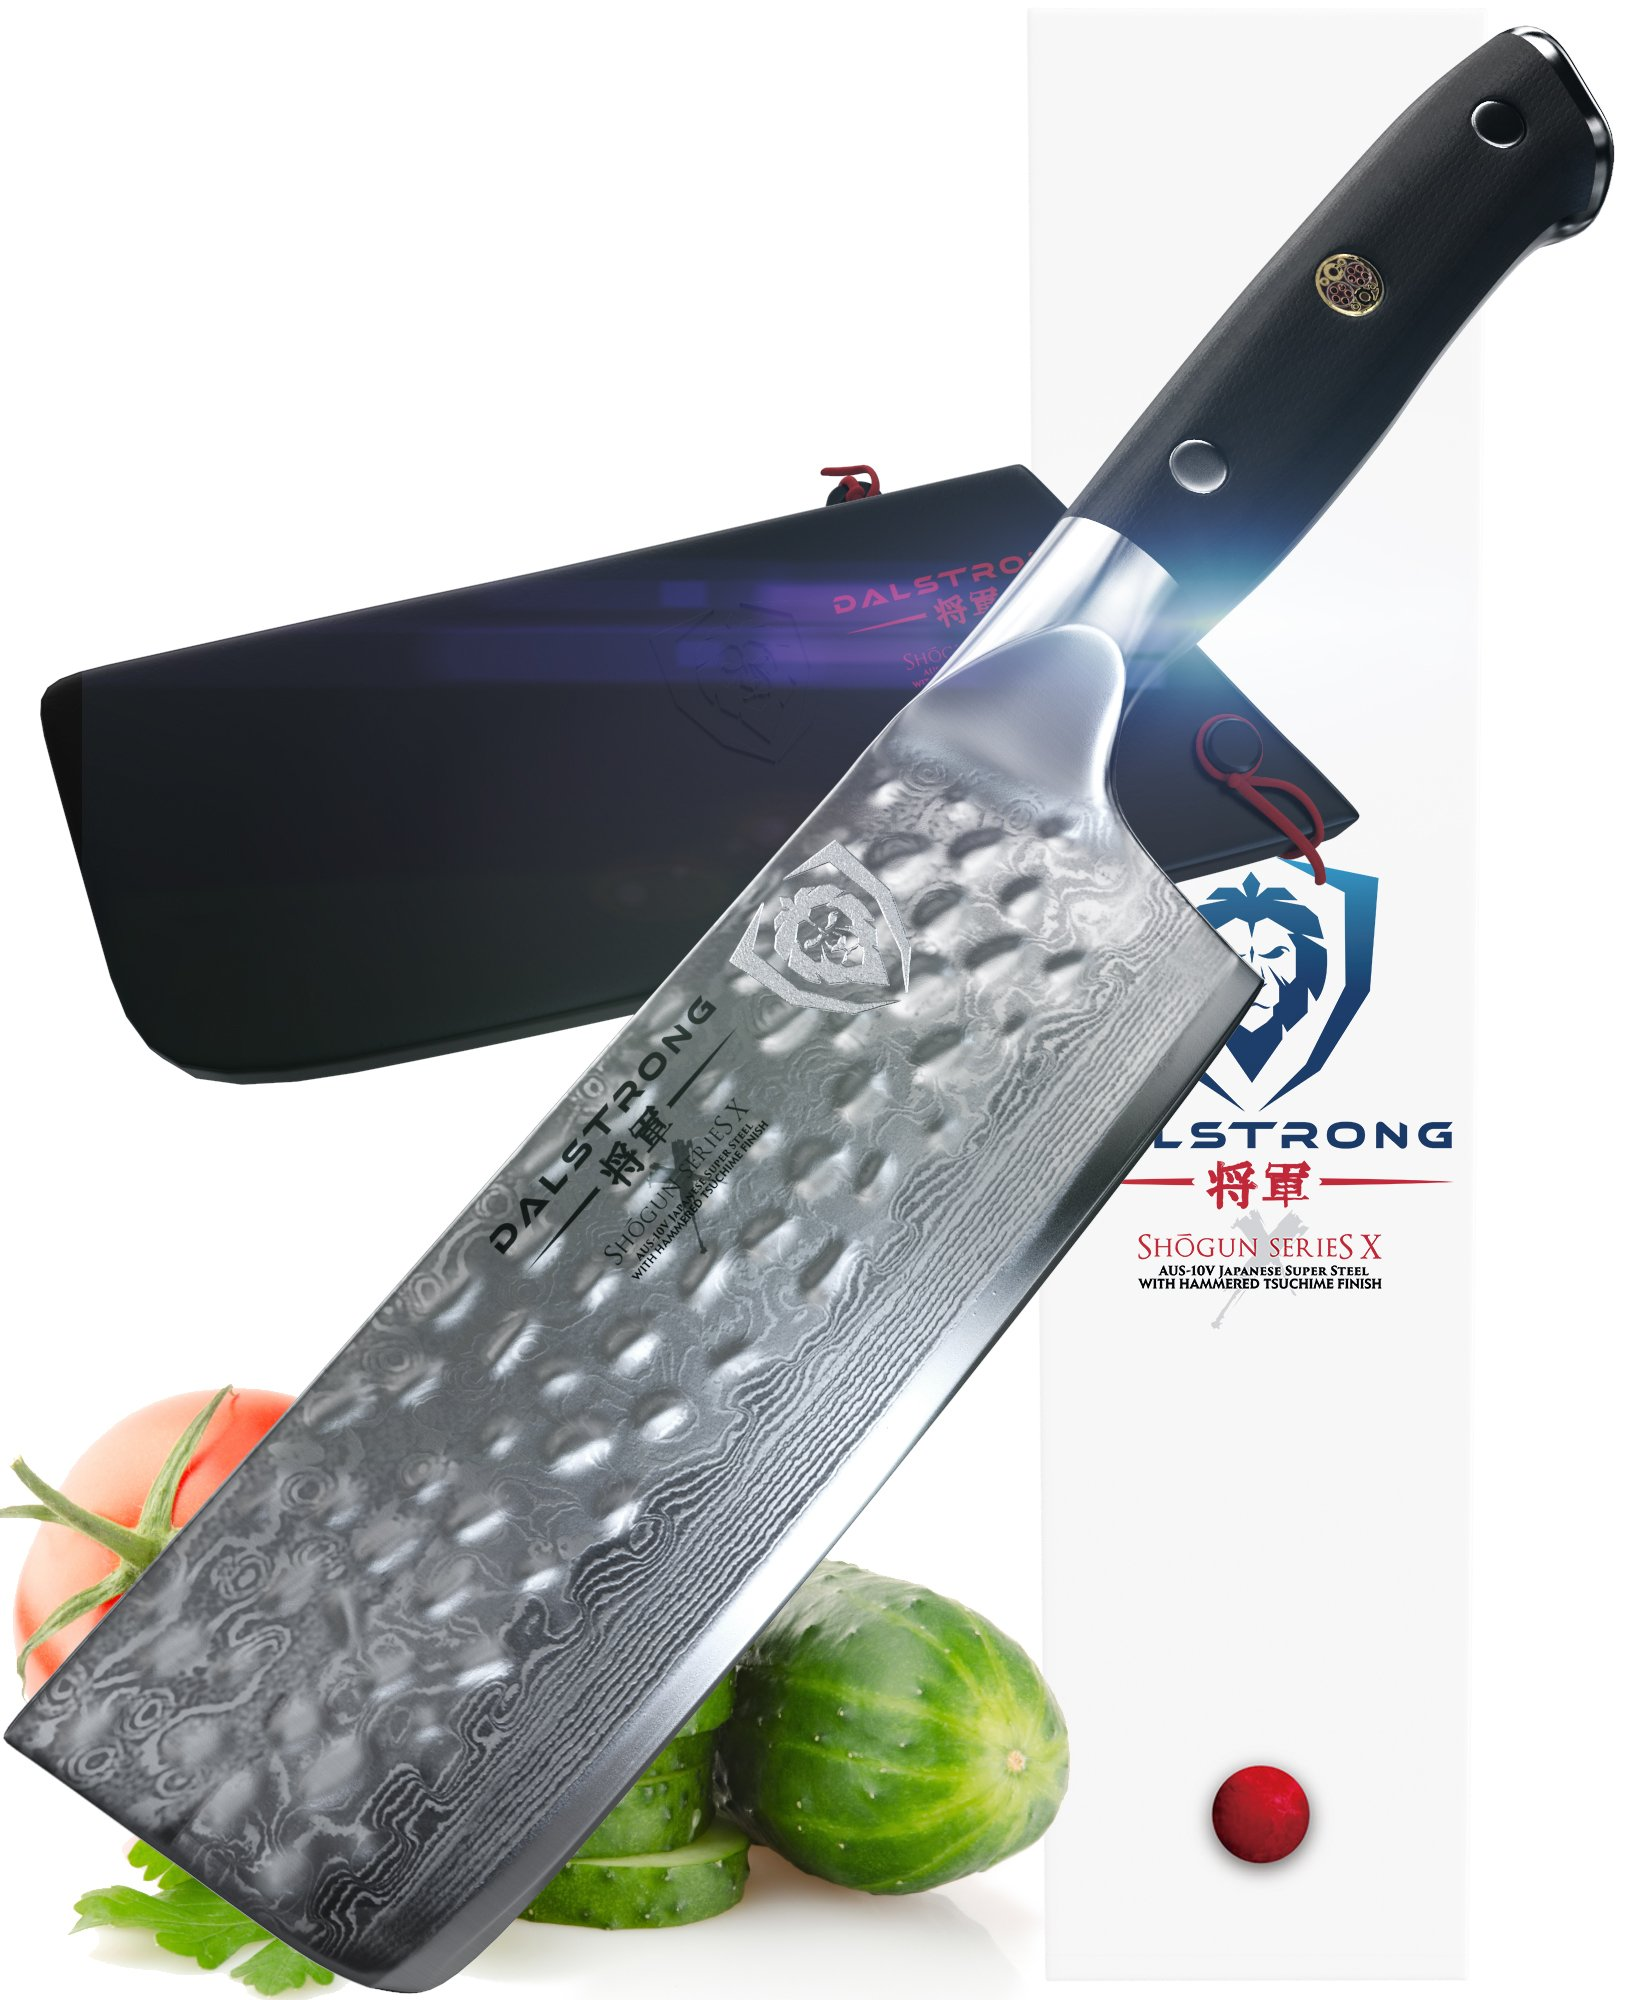 DALSTRONG Nakiri Vegetable Knife - Shogun Series X - VG10 - Hammered Finish - 6'' (152mm)